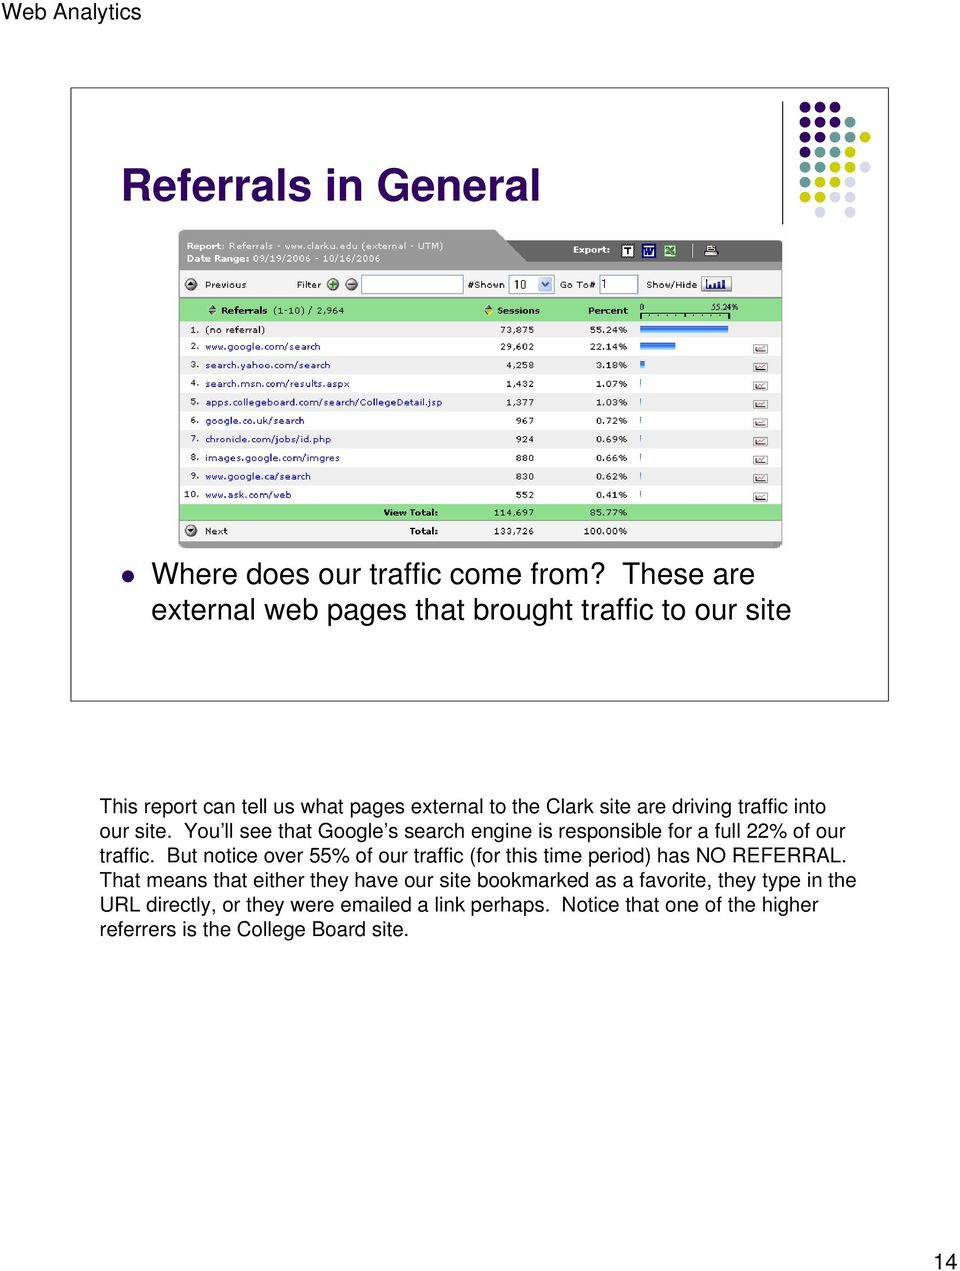 into our site. You ll see that Google s search engine is responsible for a full 22% of our traffic.